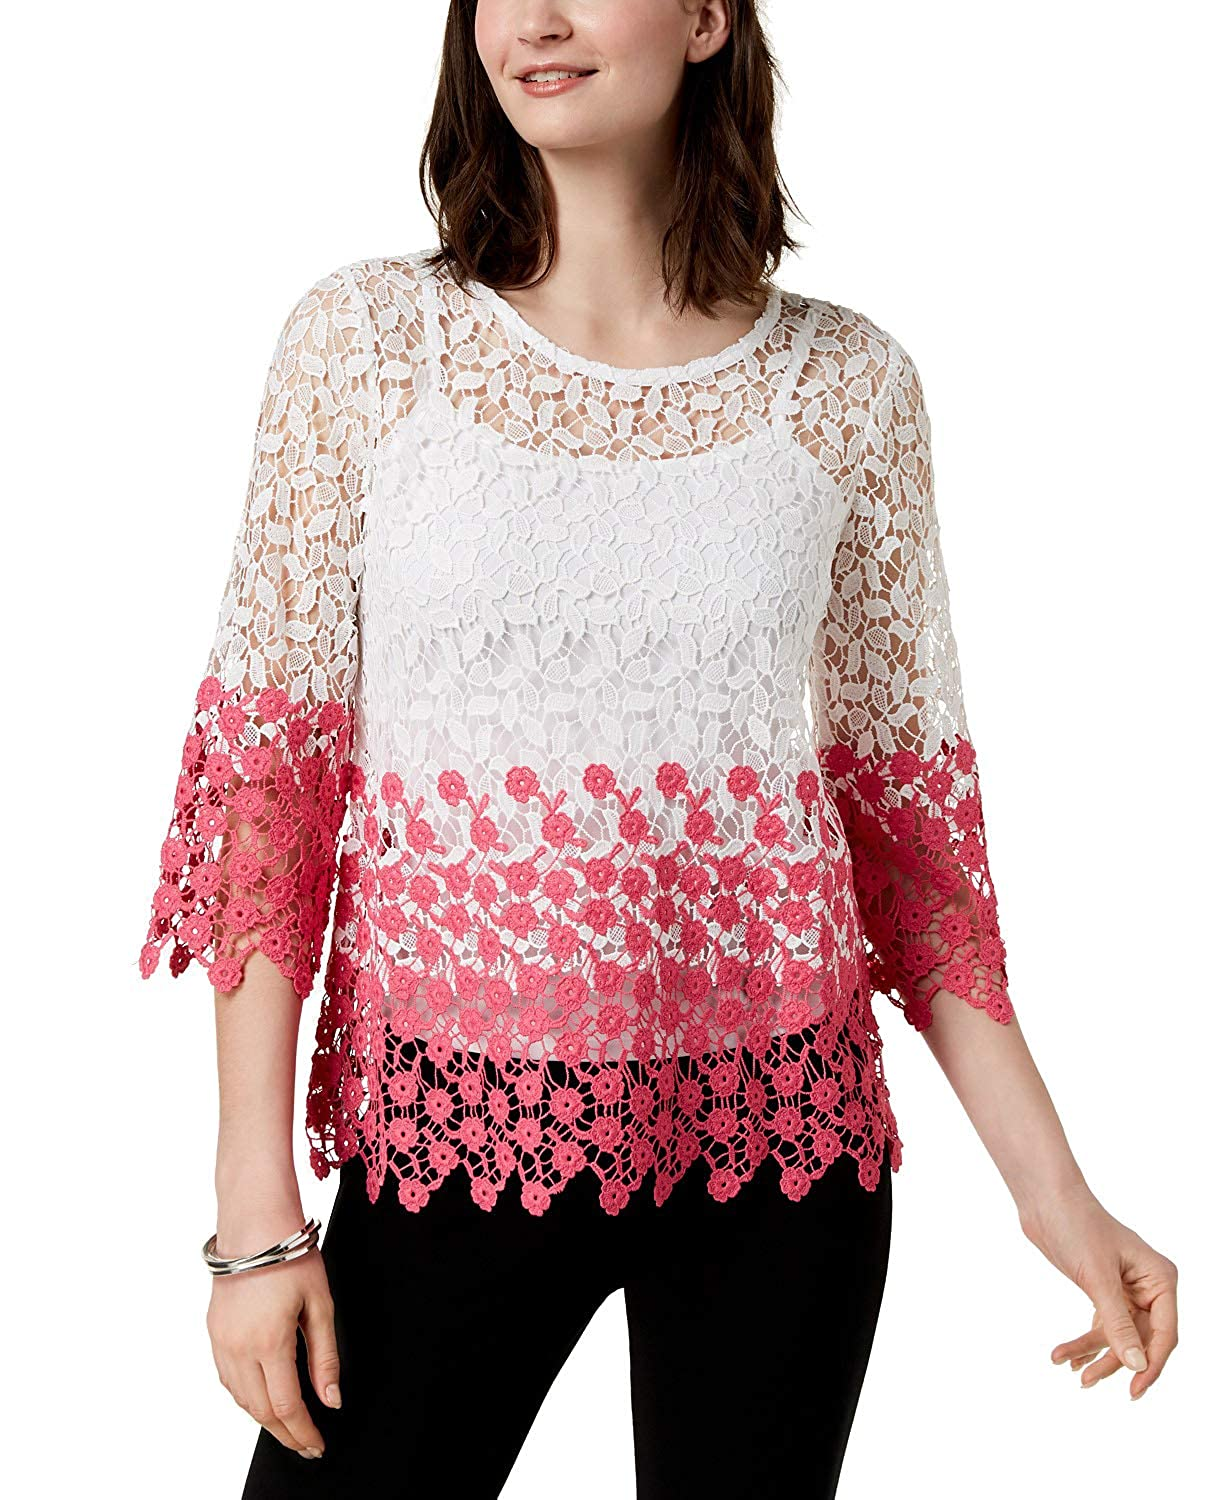 Bright White Charter Club Petite colorblocked Lace Top